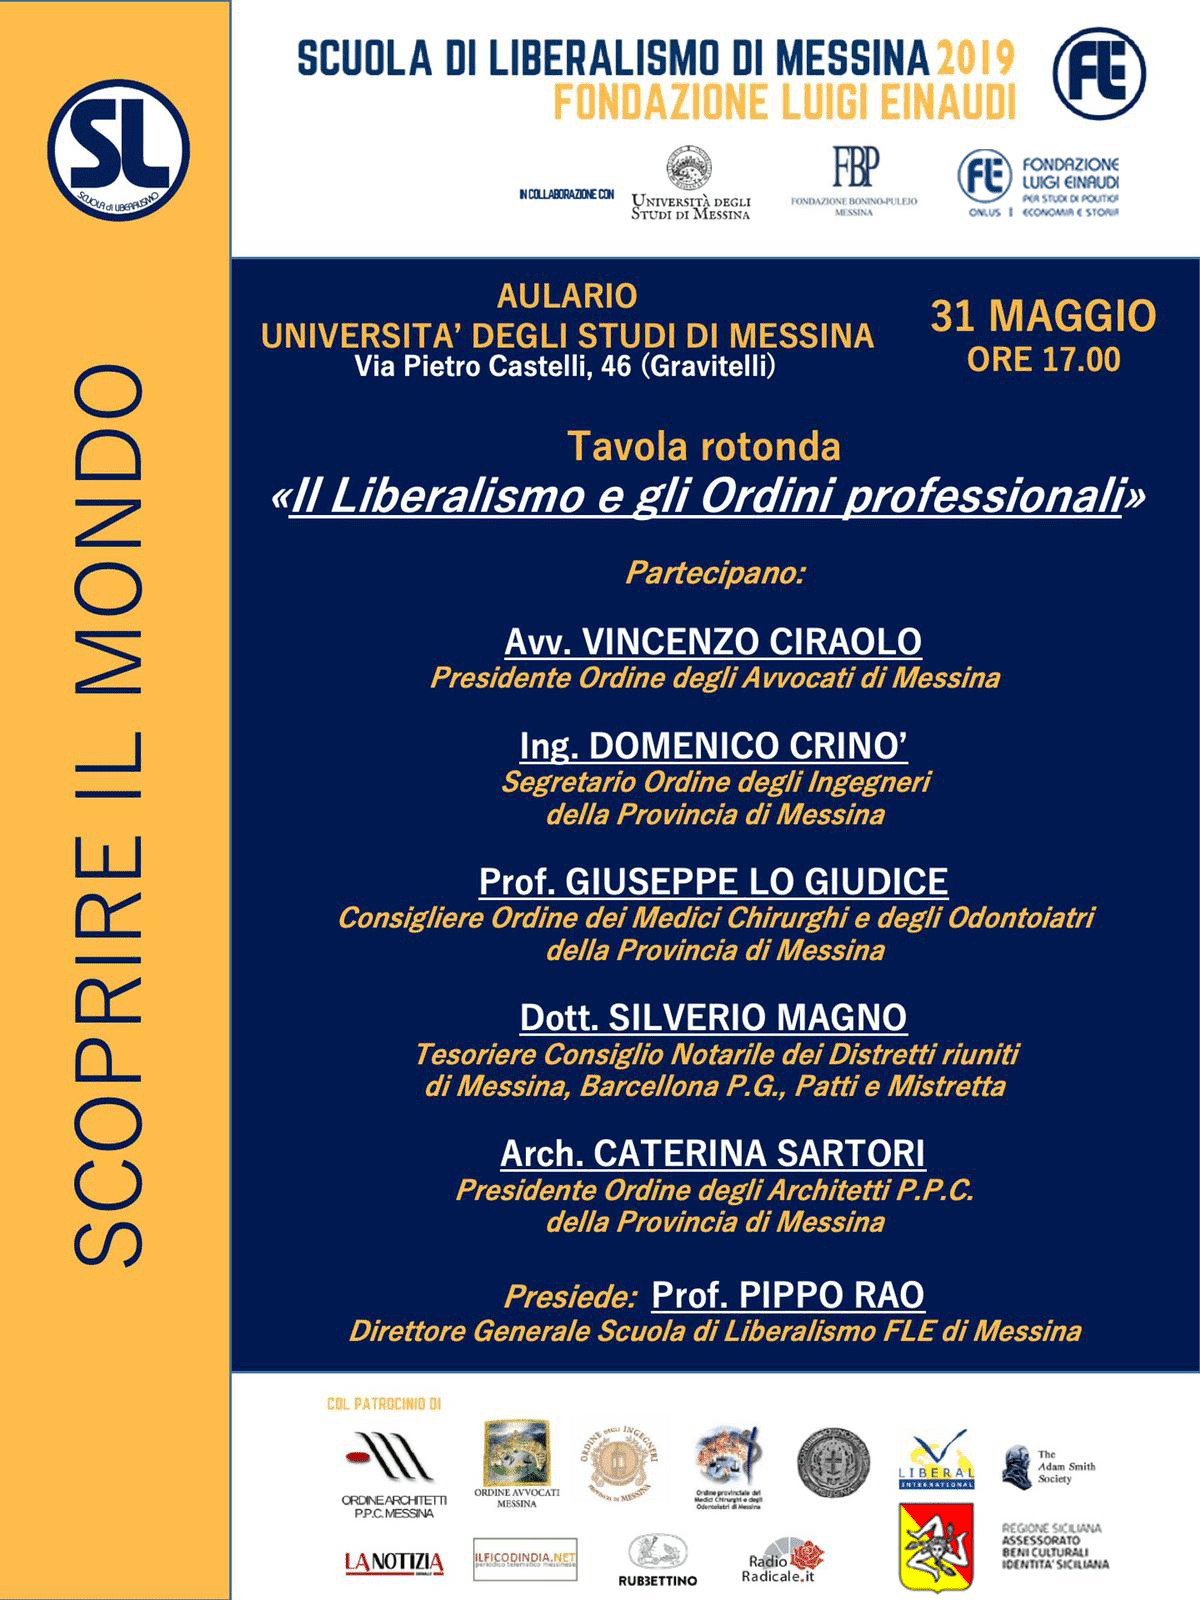 "Liberalism School 2019 – Messina: round table on the theme ""Liberalism and Professional Orders"""